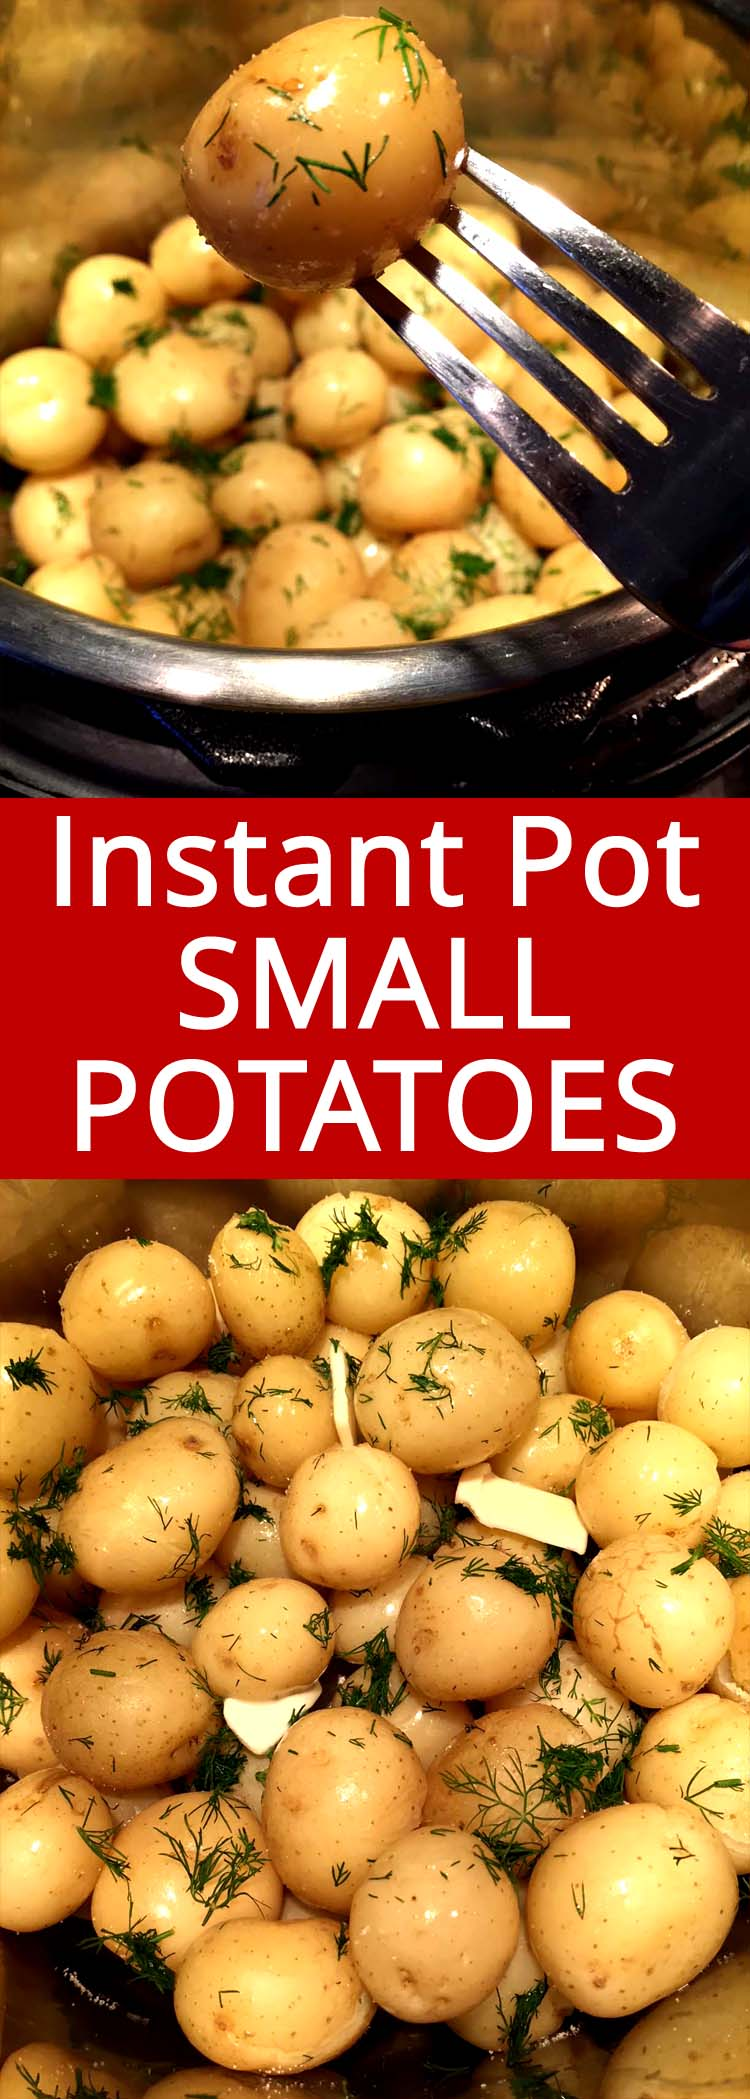 This Instant Pot small potatoes are amazing! Tender little baby potatoes, perfectly cooked in minutes!